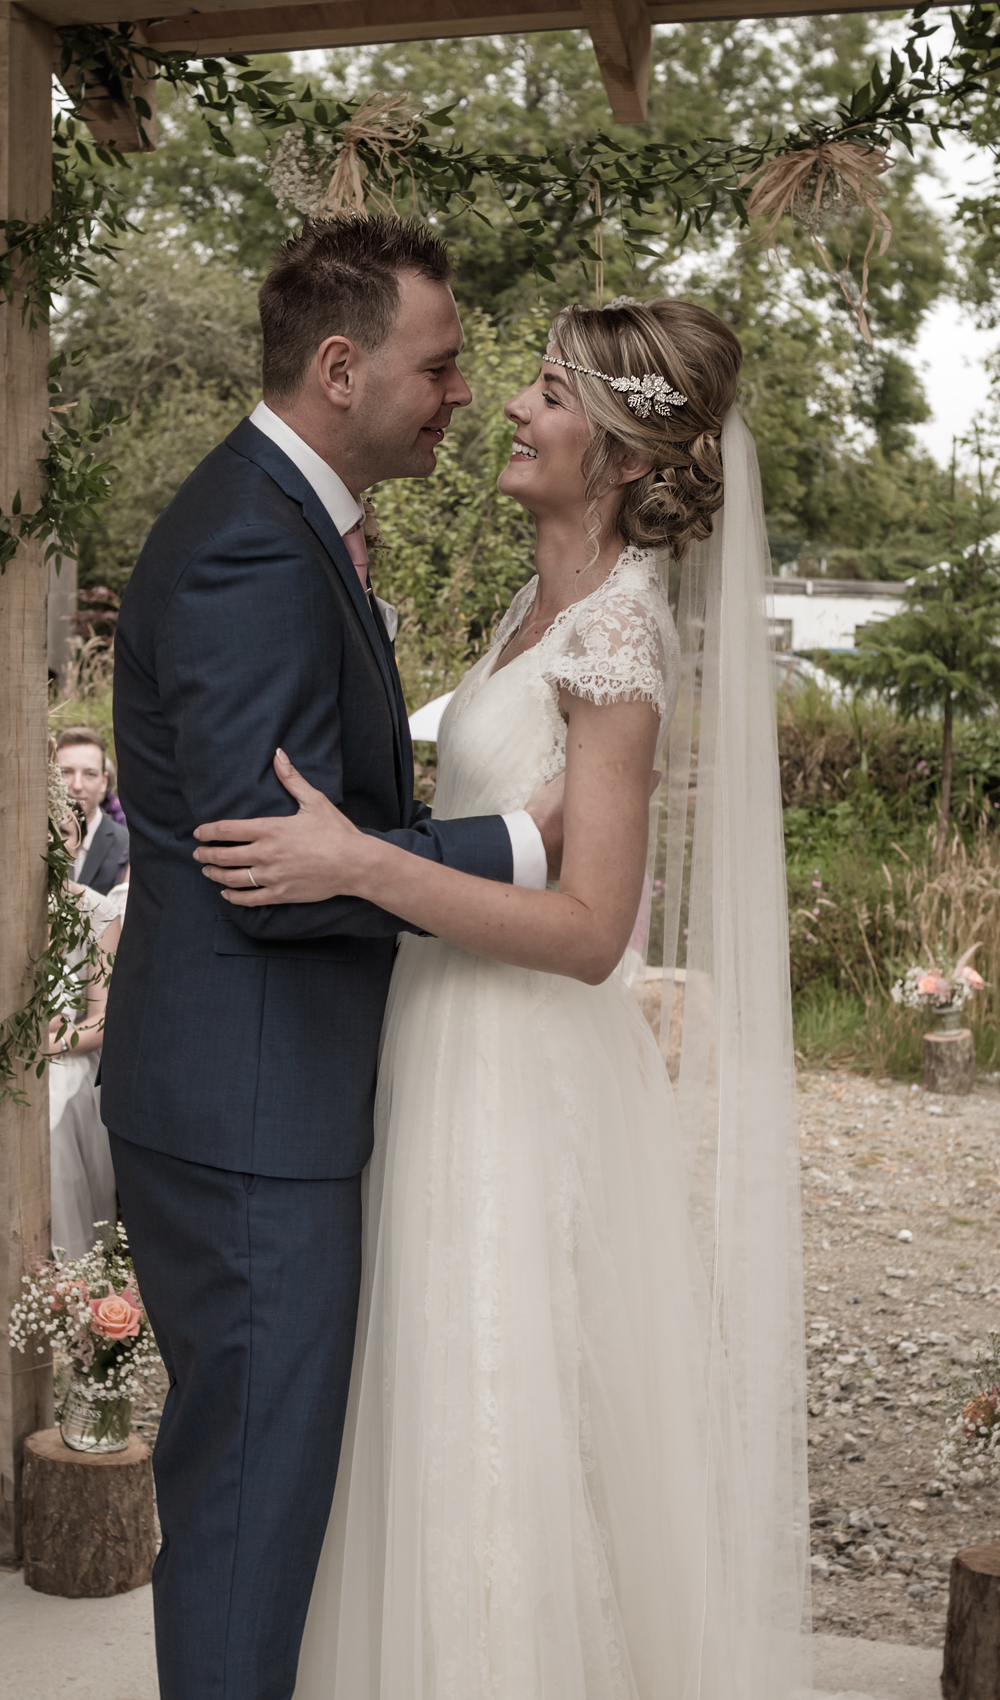 A Rustic Country Wedding at Knightor Winery - Image 17